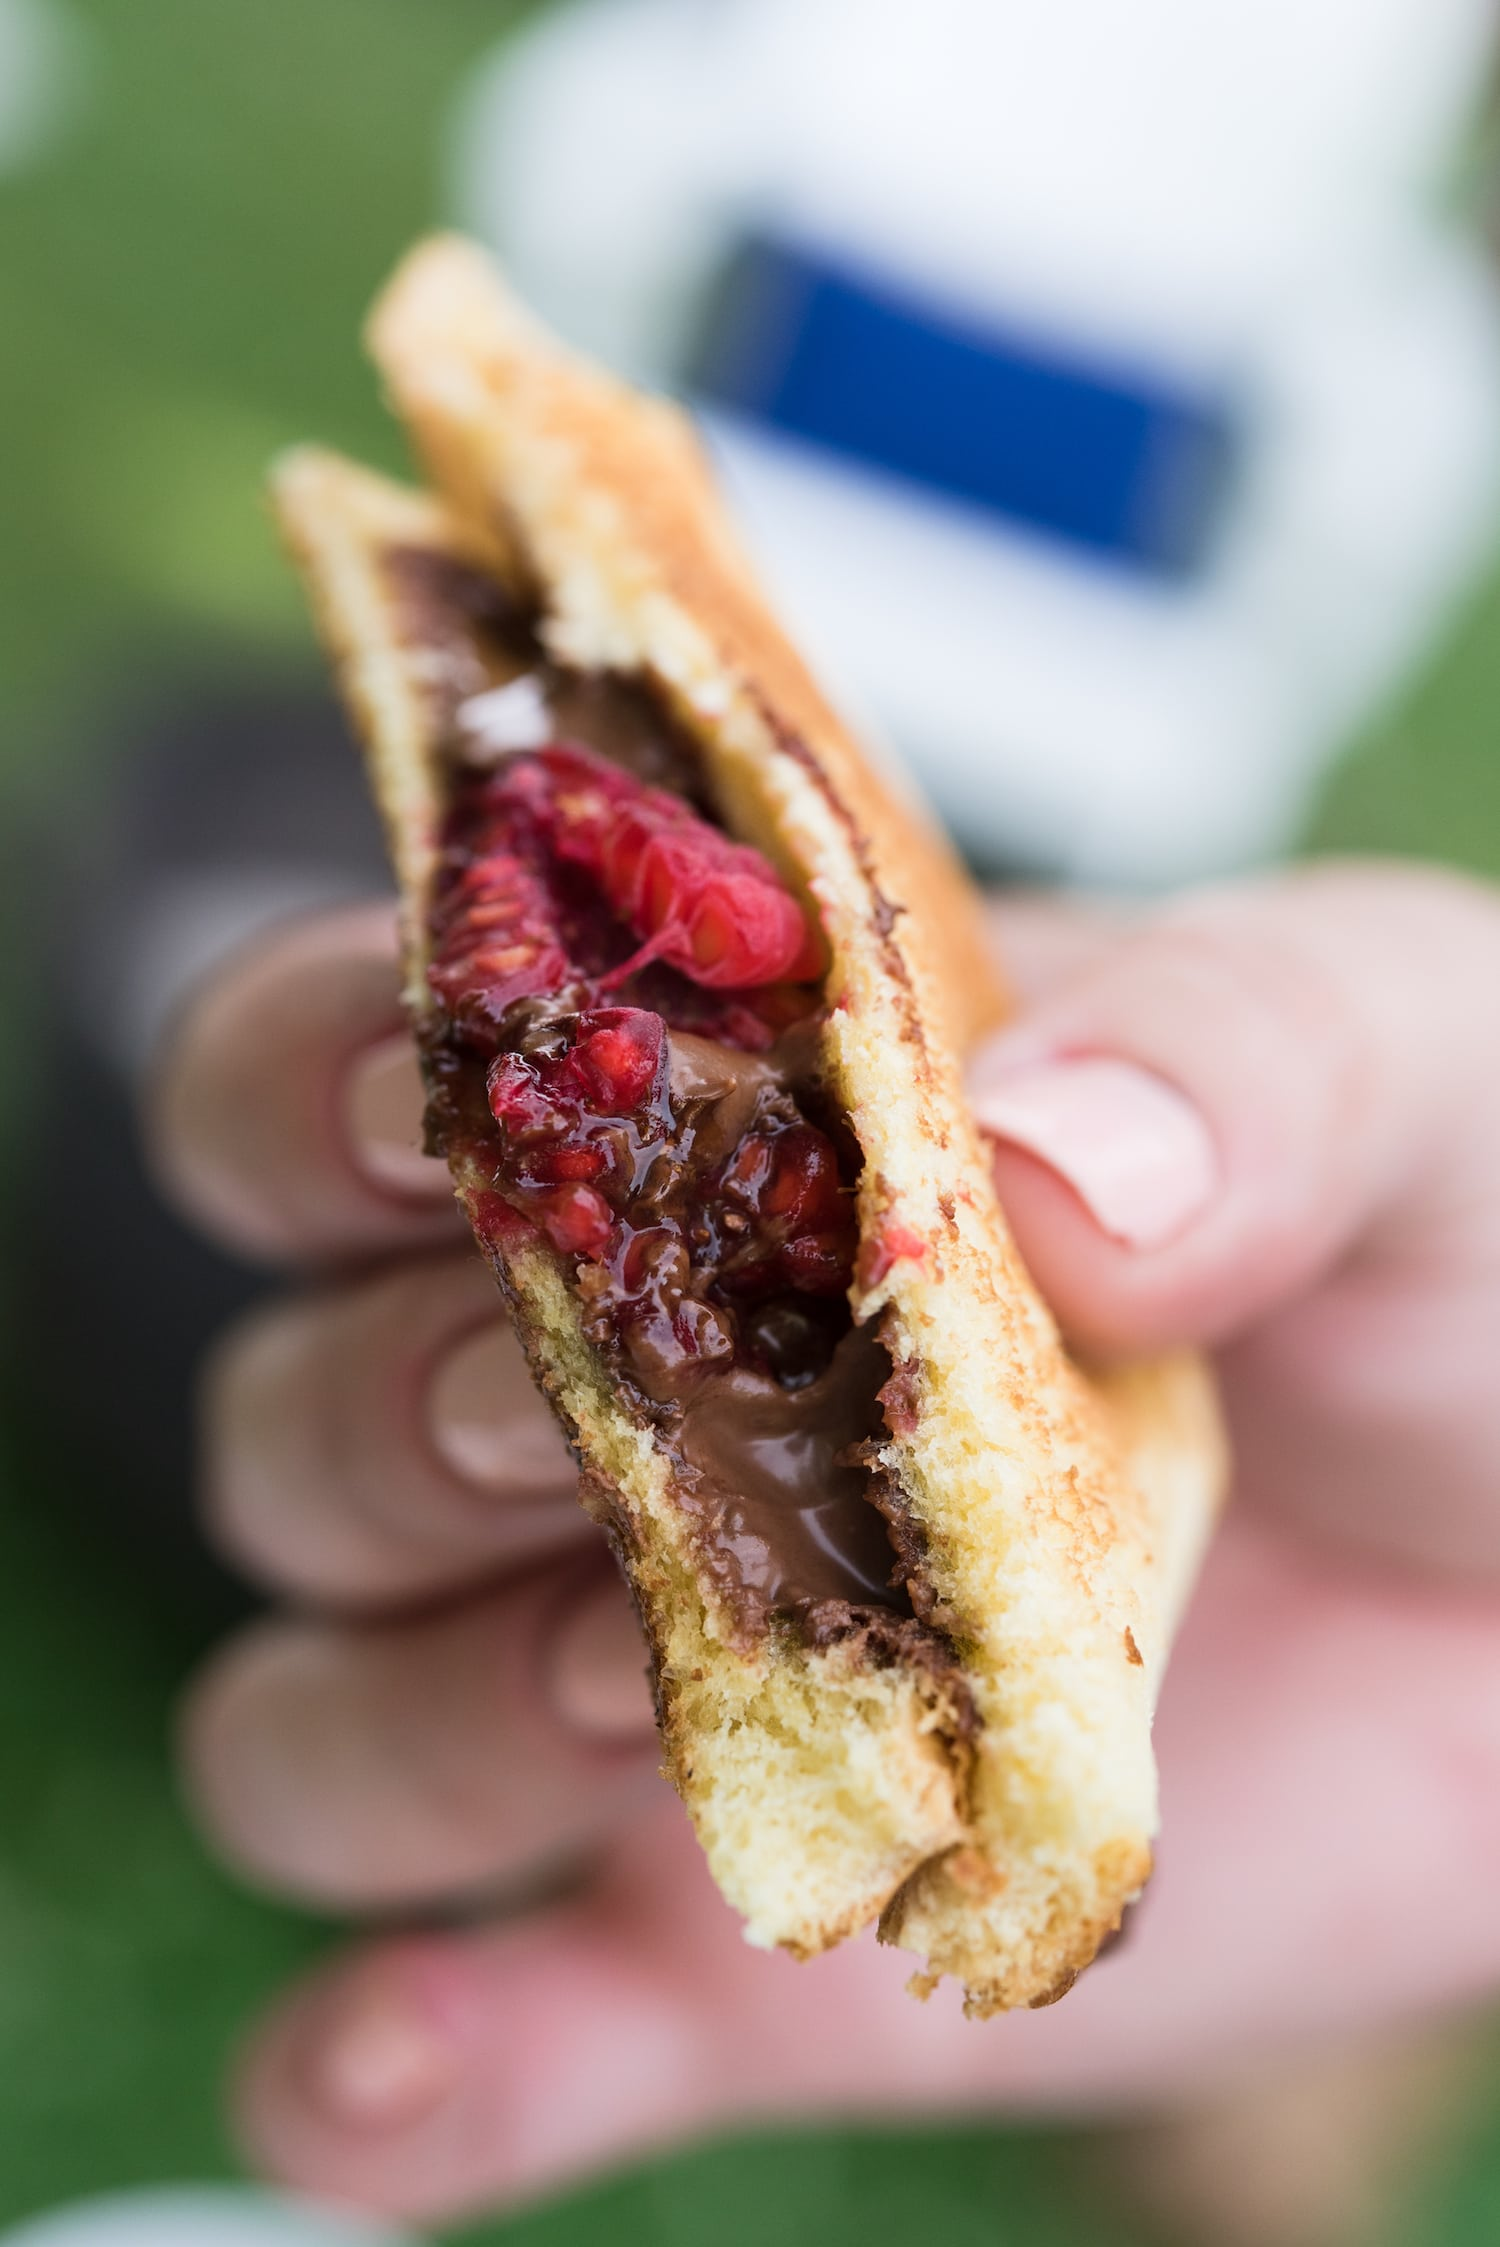 Best Camping Recipes! Raspberry Nutella mountain pies from entertaining blog @cydconverse